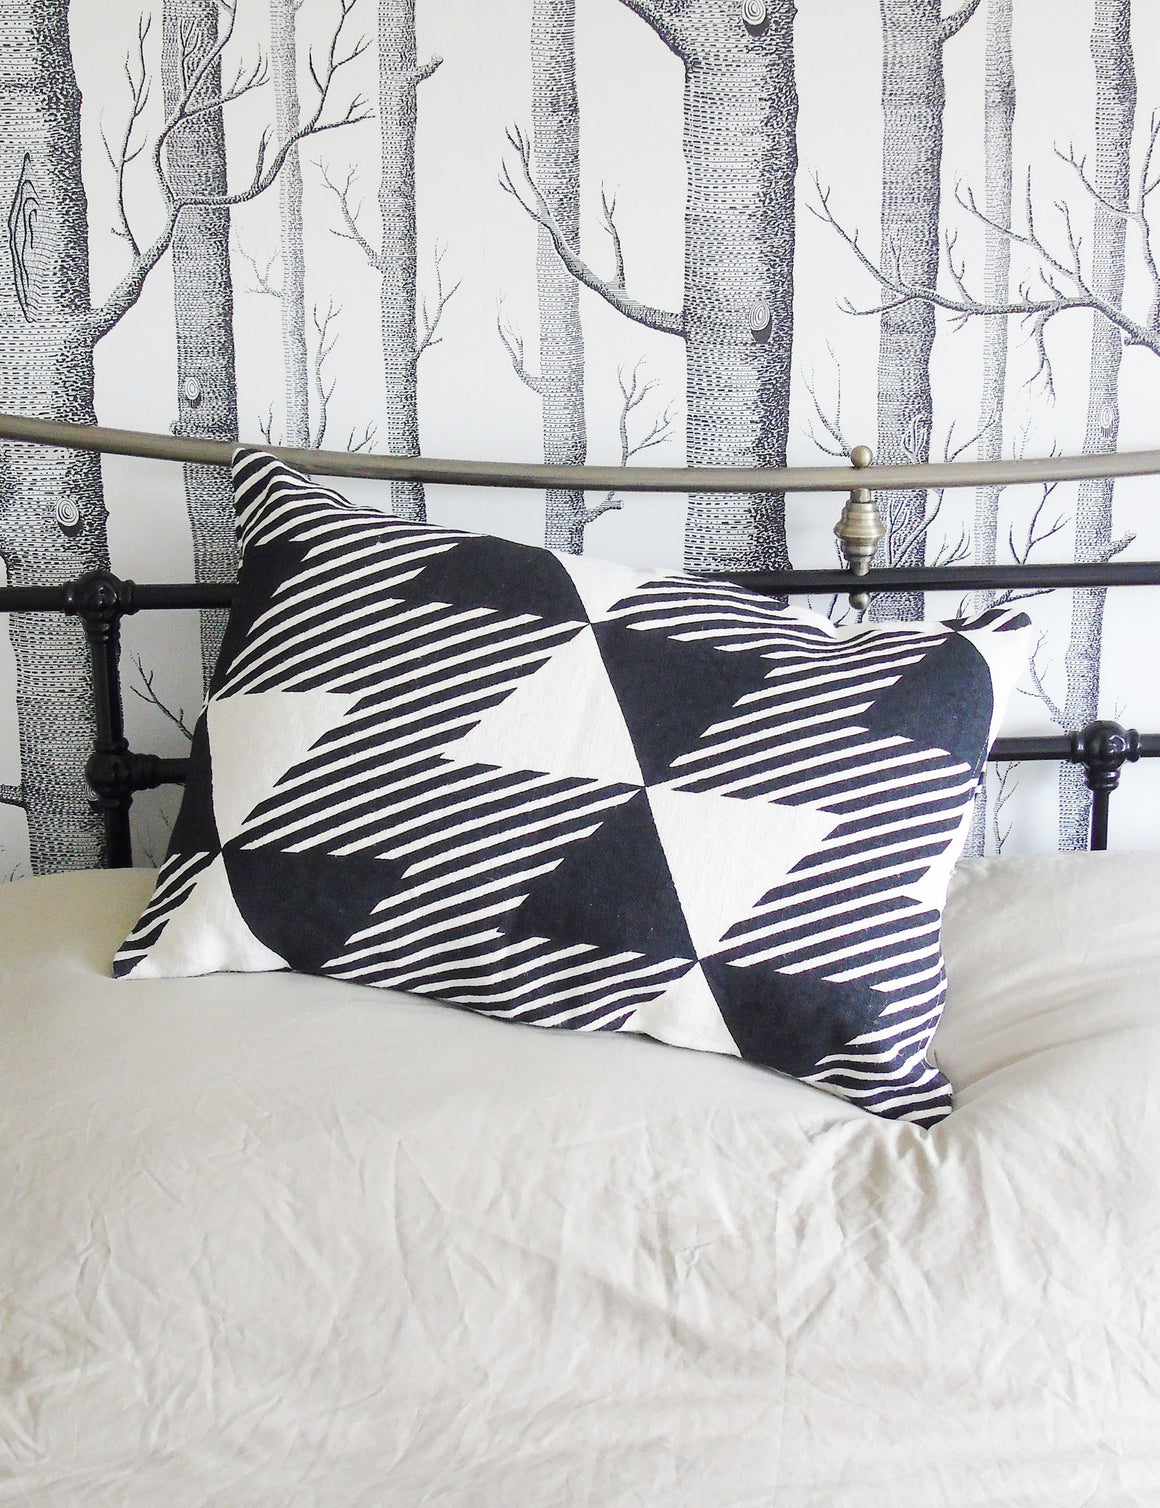 Geometric Monochrome Cushion